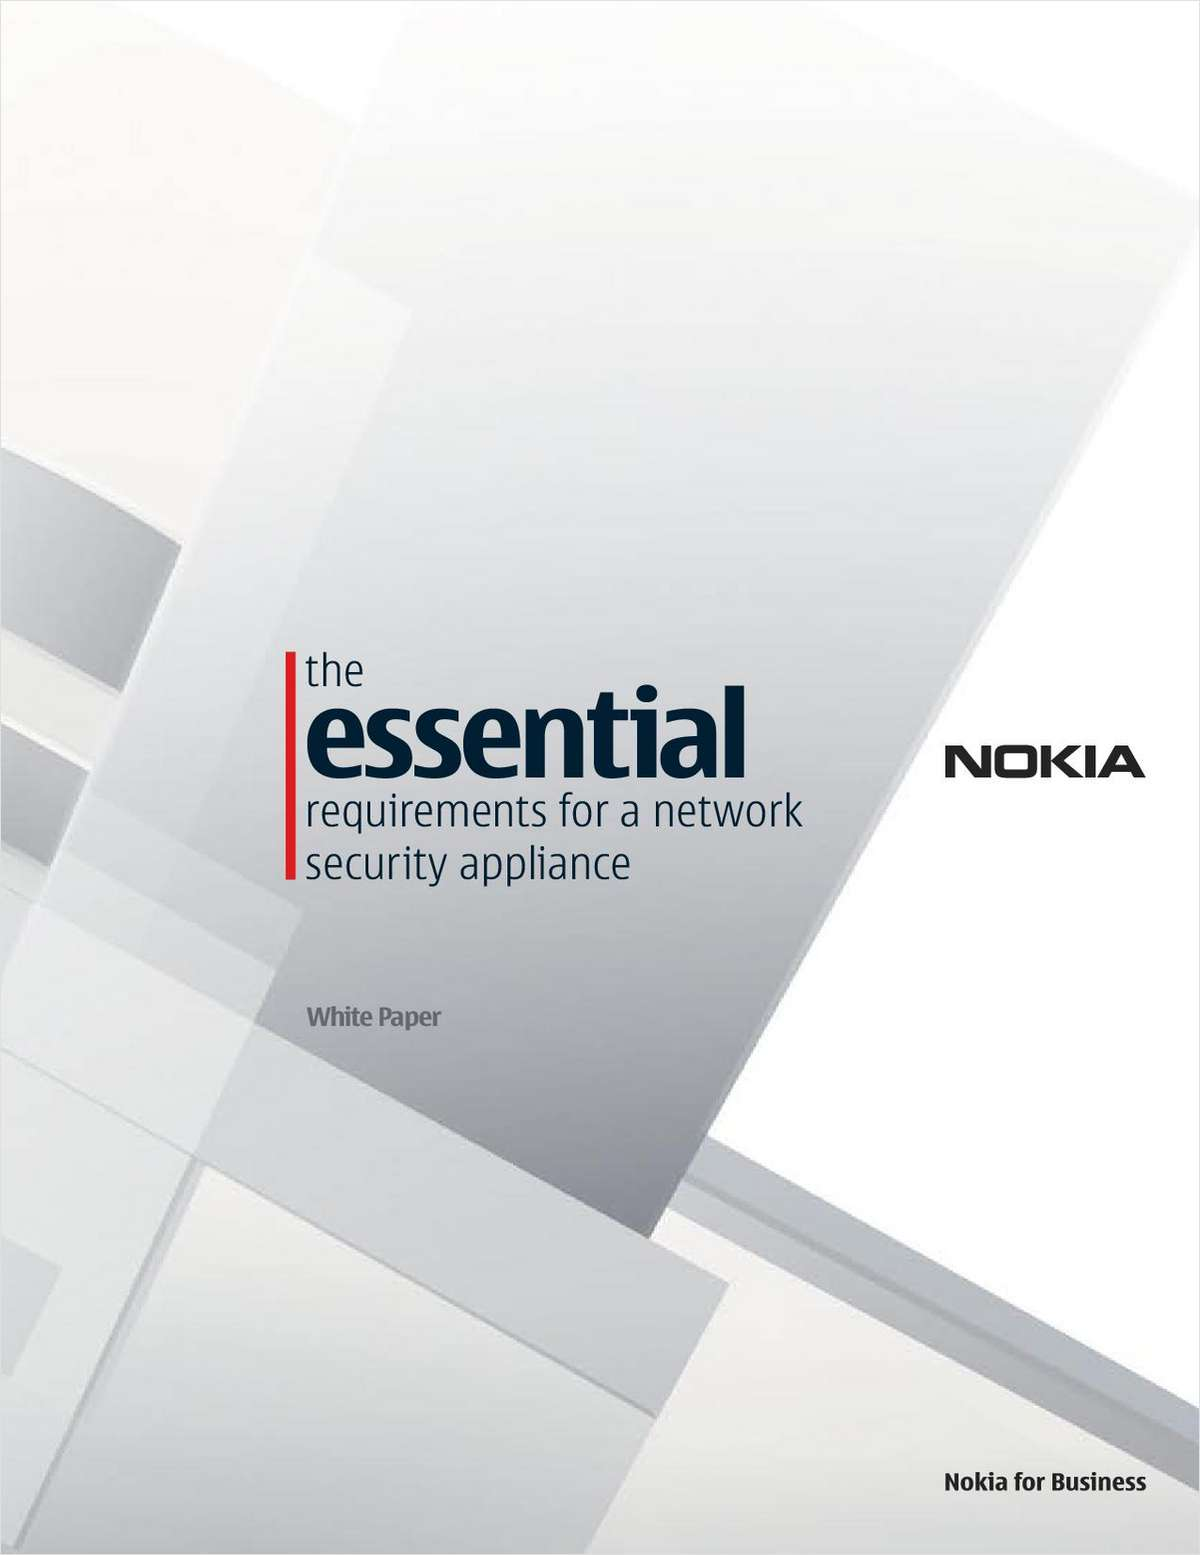 The Essential Requirements: Network Security Appliance